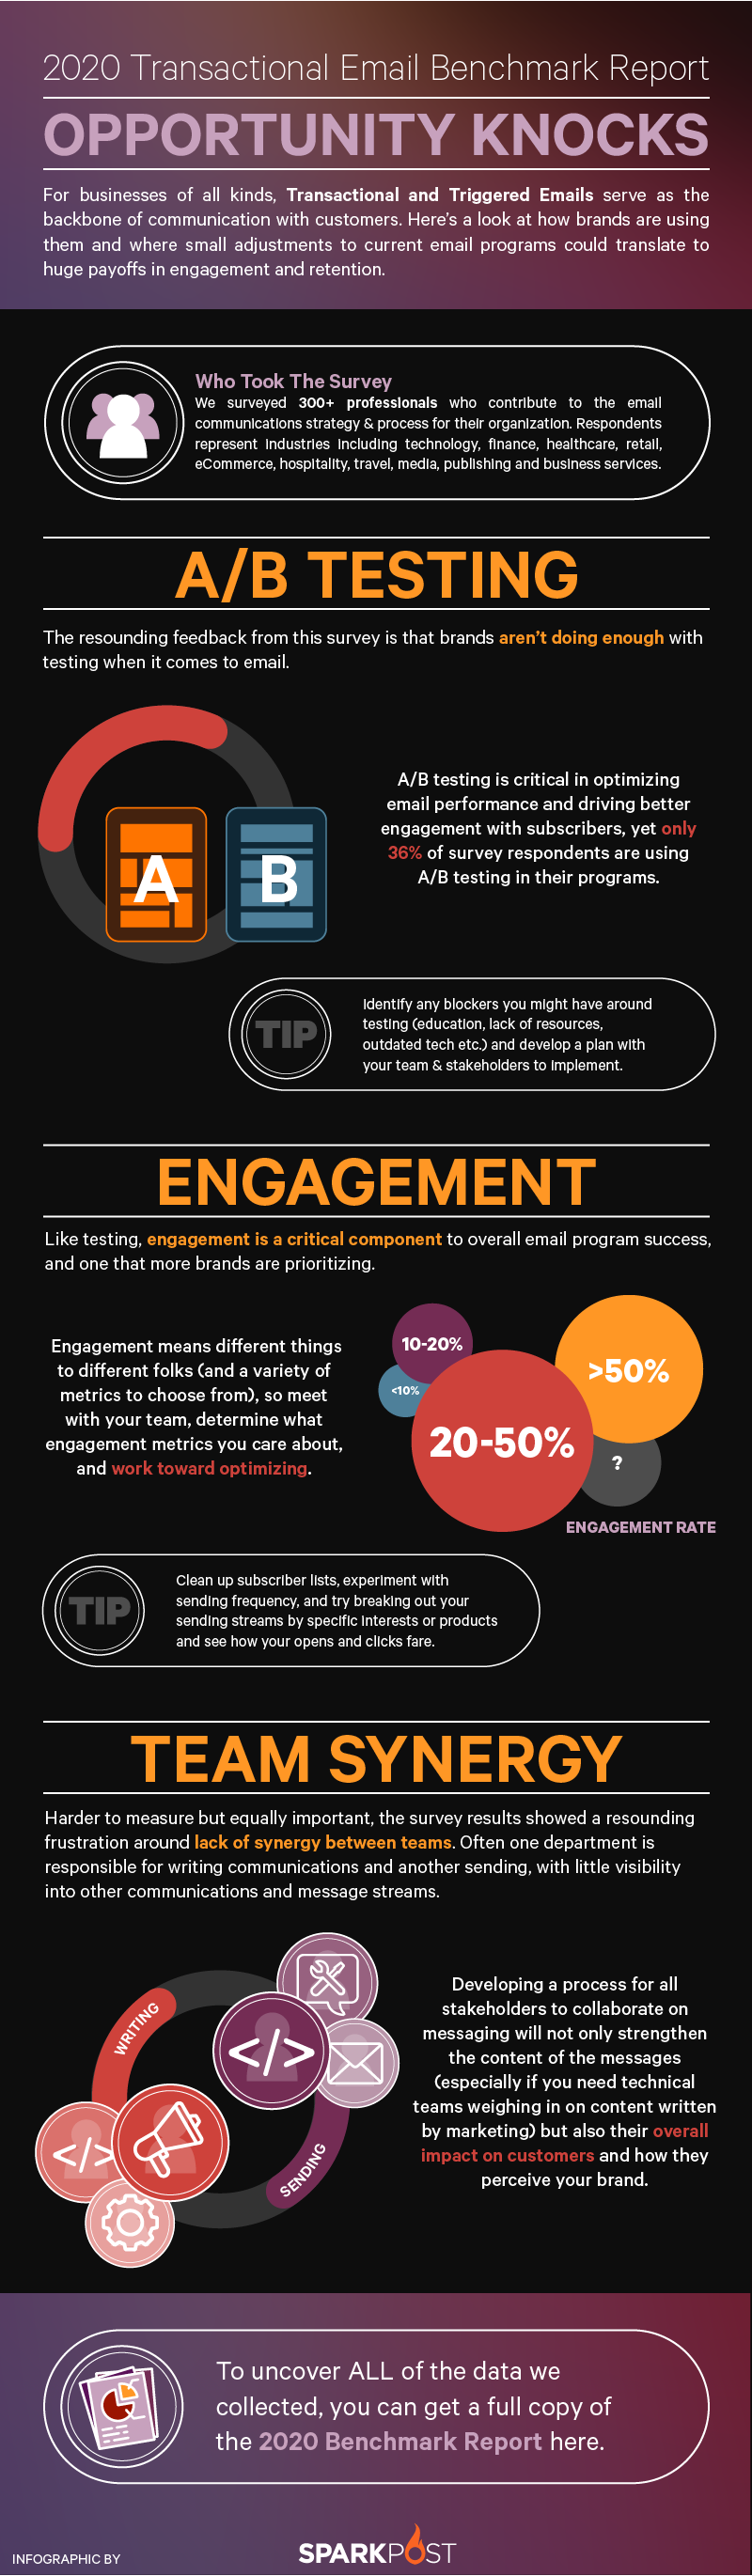 http://transactional%20email%20benchmark%20report%20infographic%20image%202020